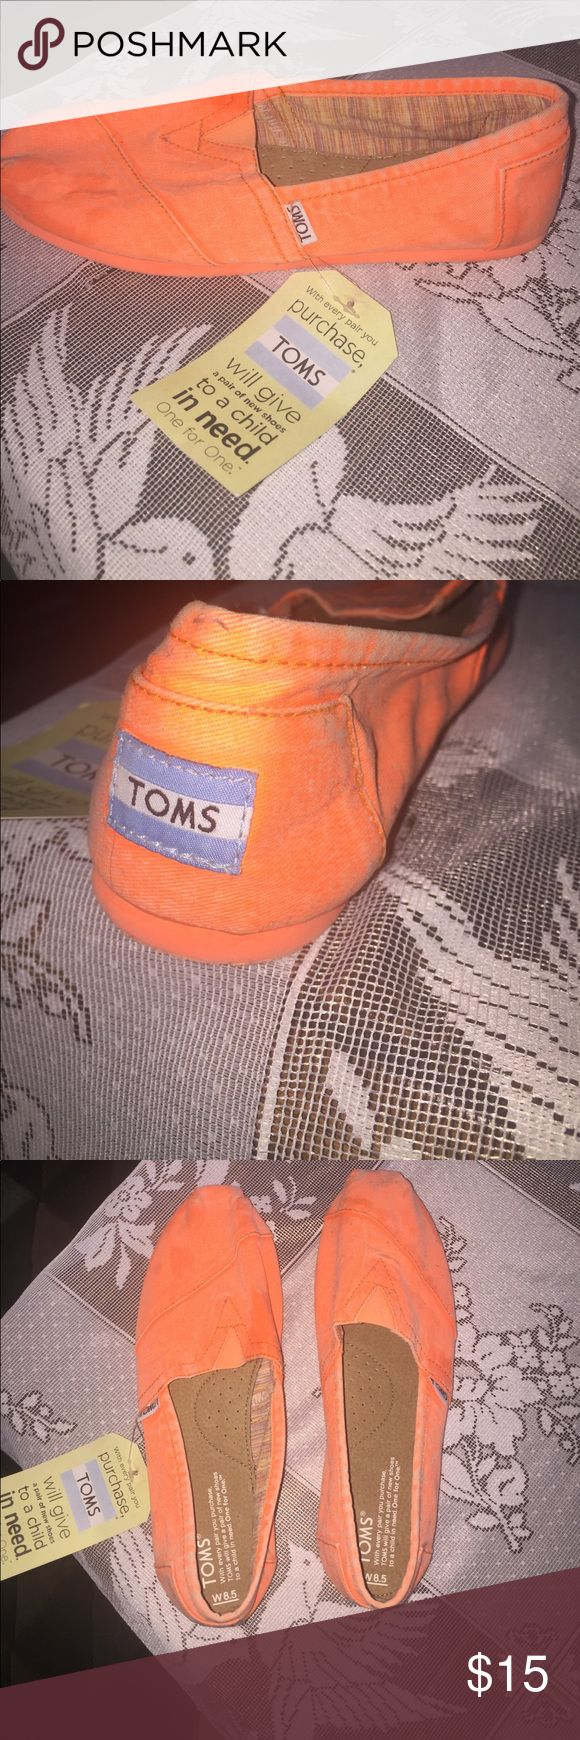 Brand new Toms sneakers Brand new bright orange Toms sneakers never worn still with tags. They have been sitting on the bottom of my closet so a few dirty marks, just need to be washed. Toms Shoes Sneakers